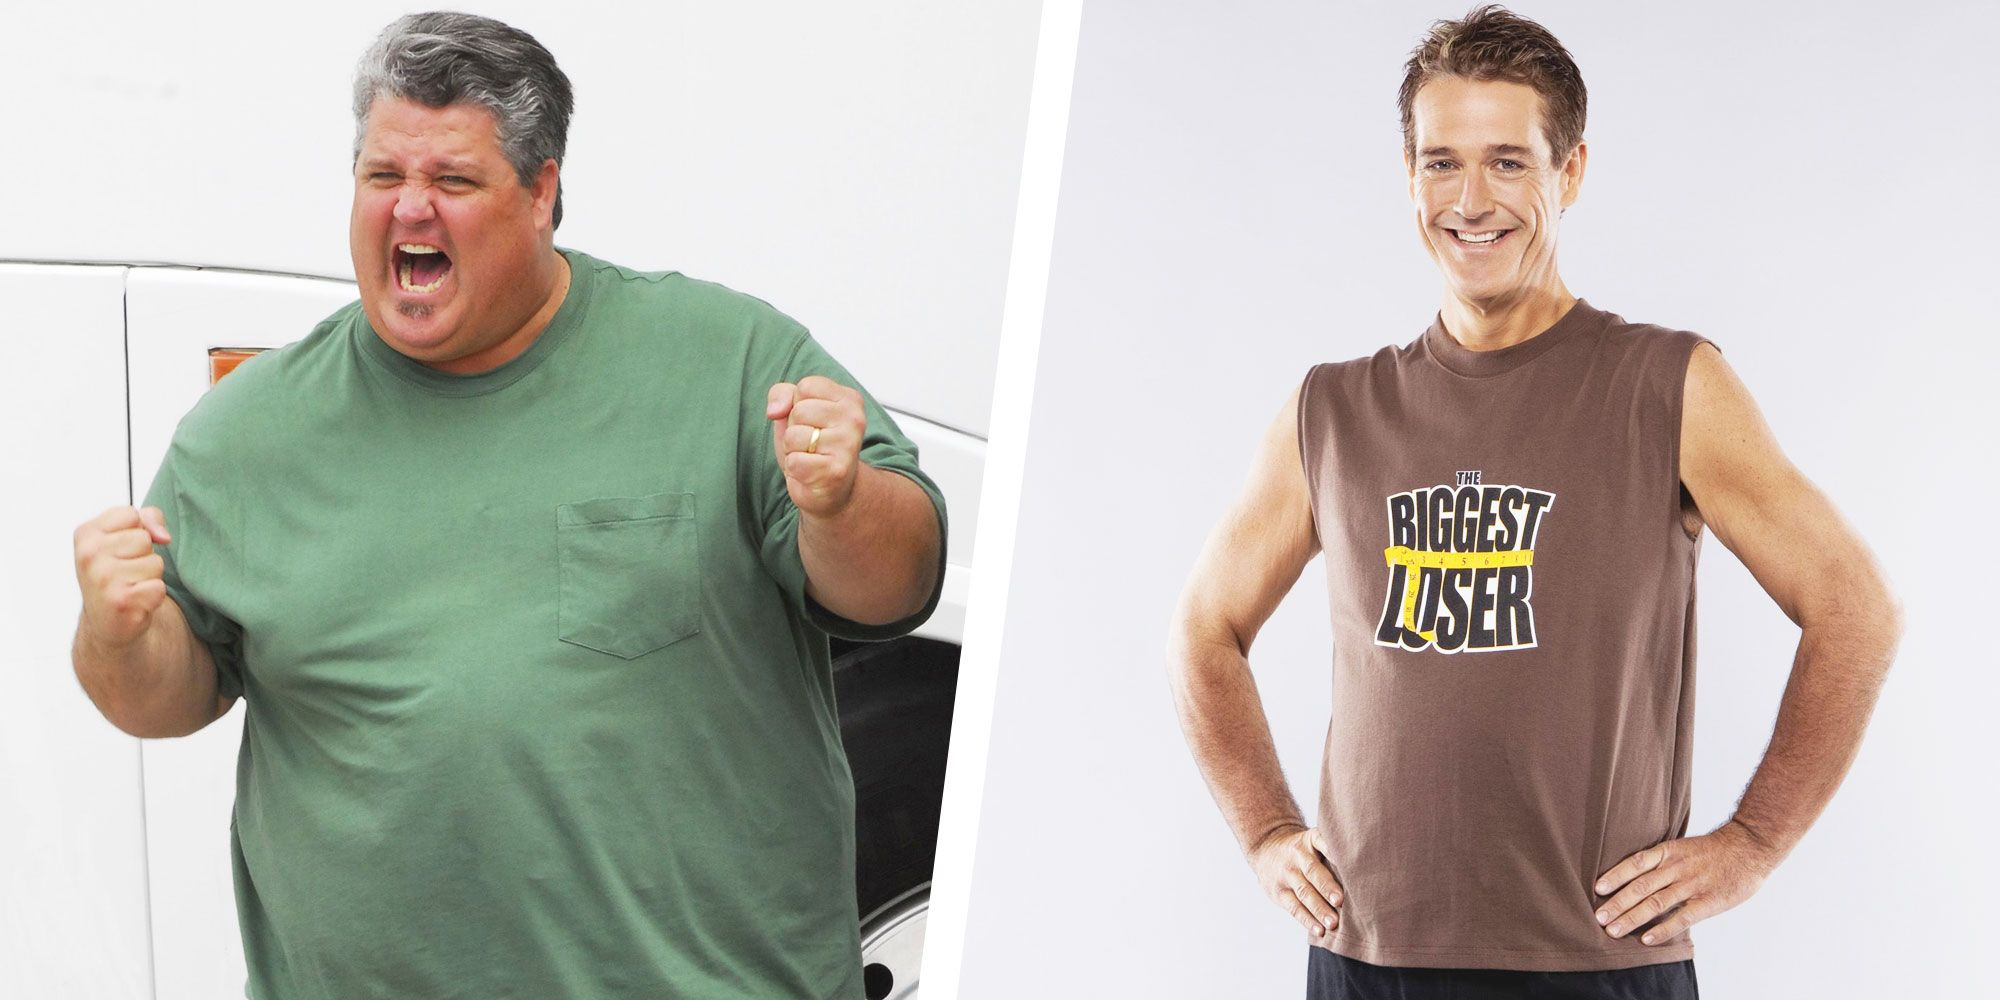 The Most Dramatic 'Biggest Loser' Transformations of All Time